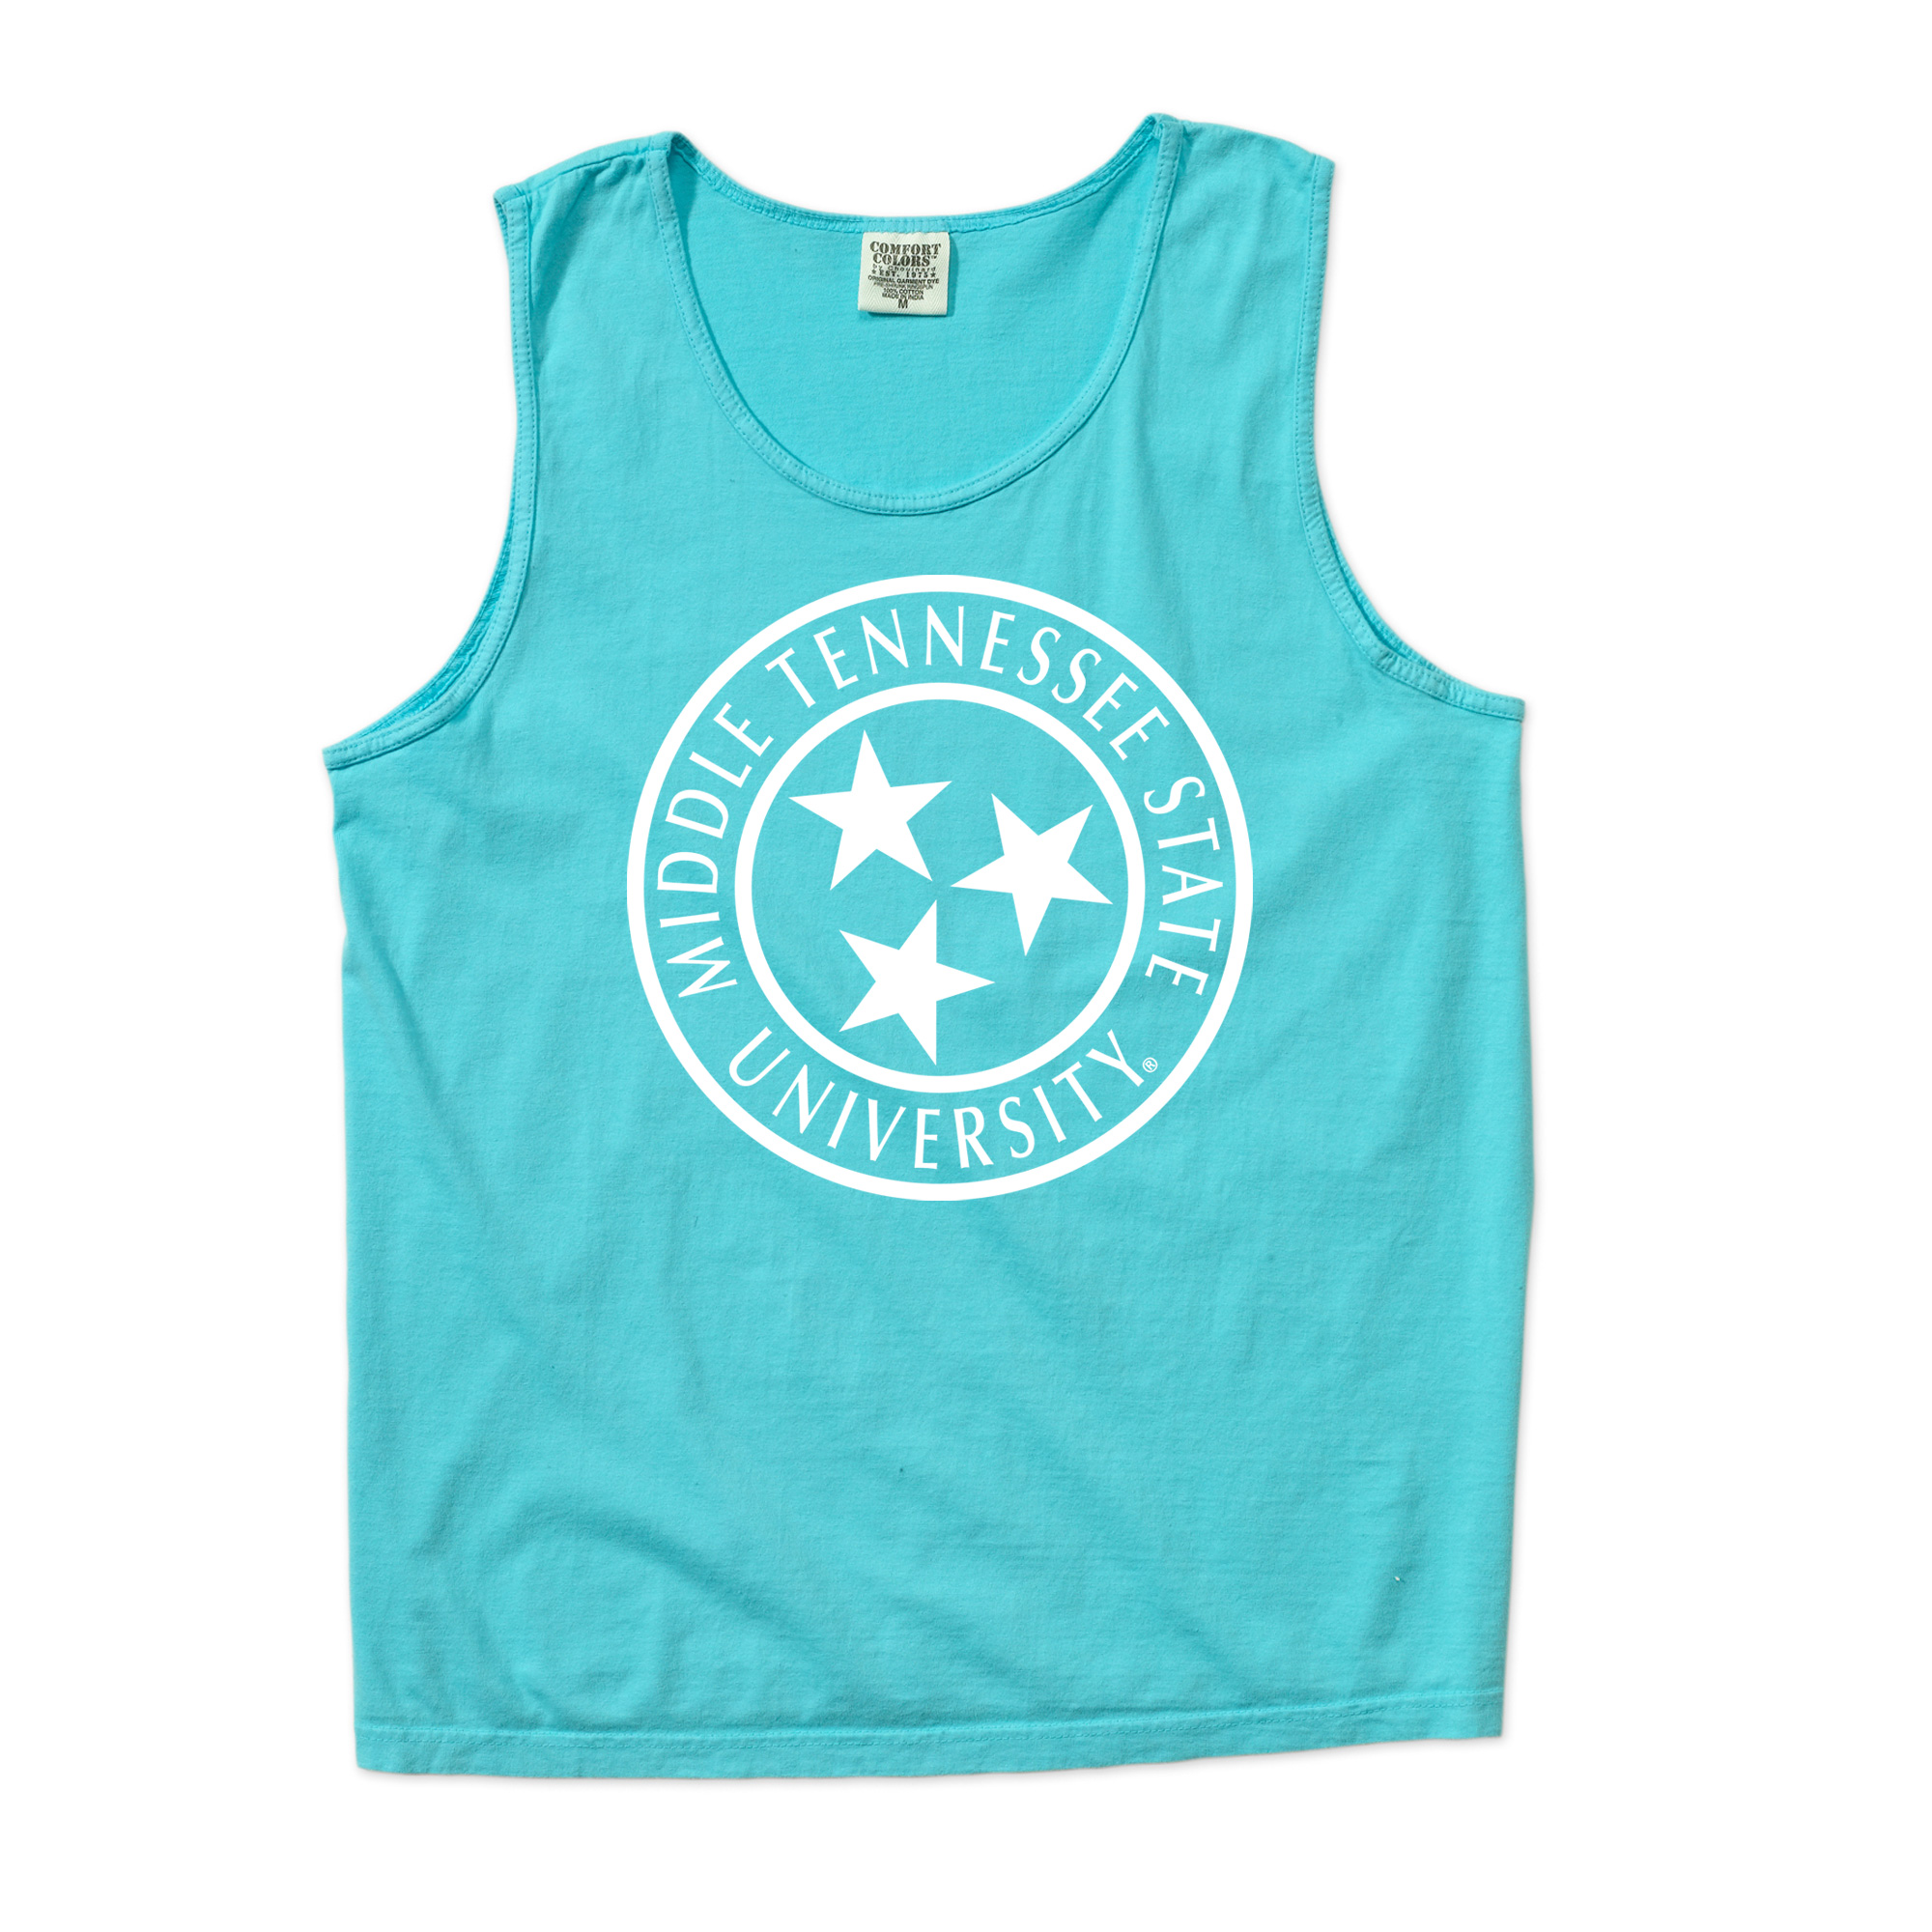 Middle Tennessee Tristar Comfort Colors Tank Top